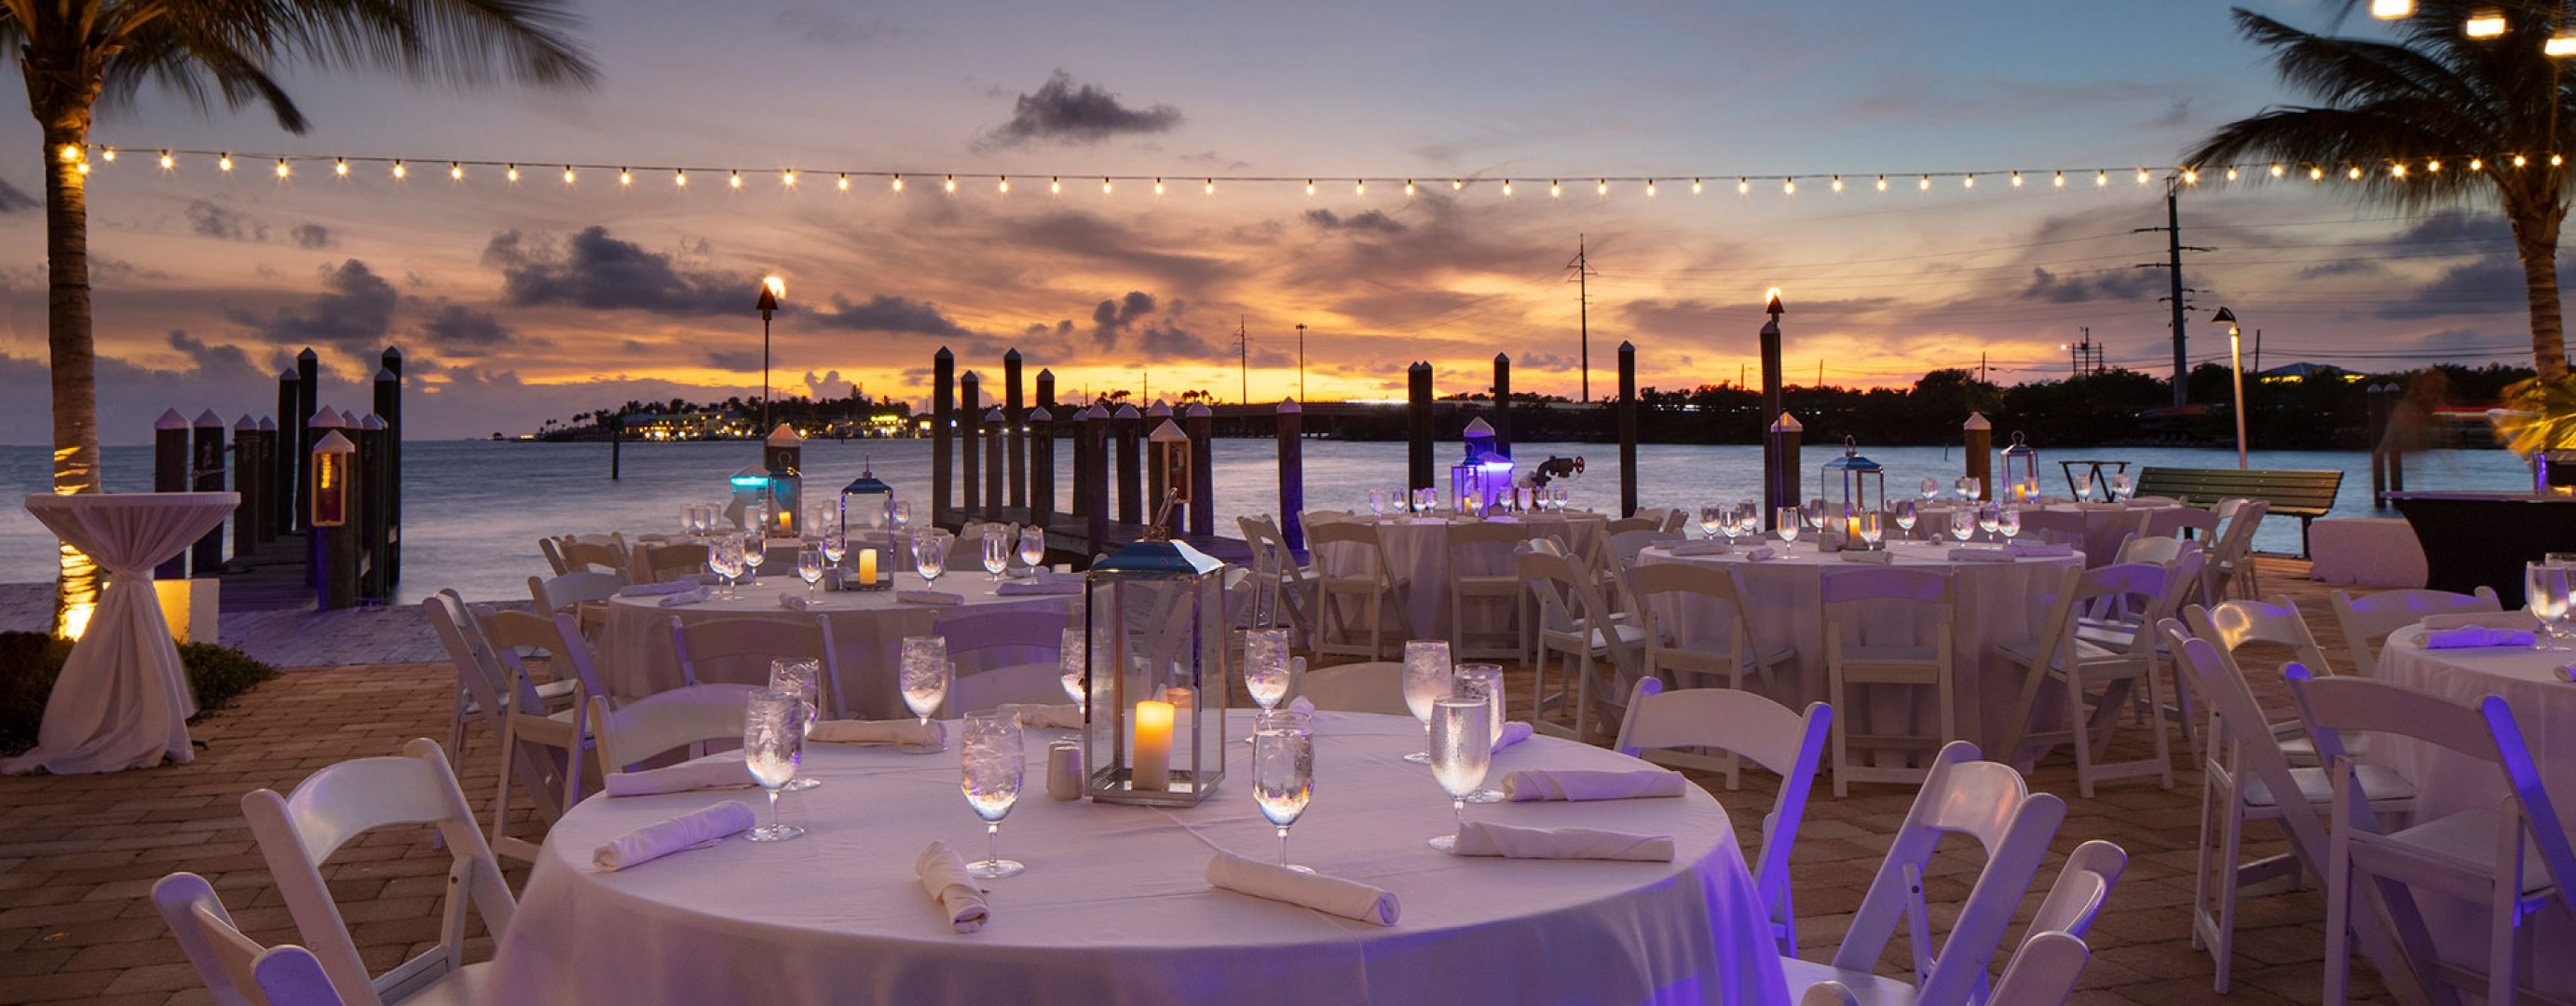 Event table set up by the water during sunset